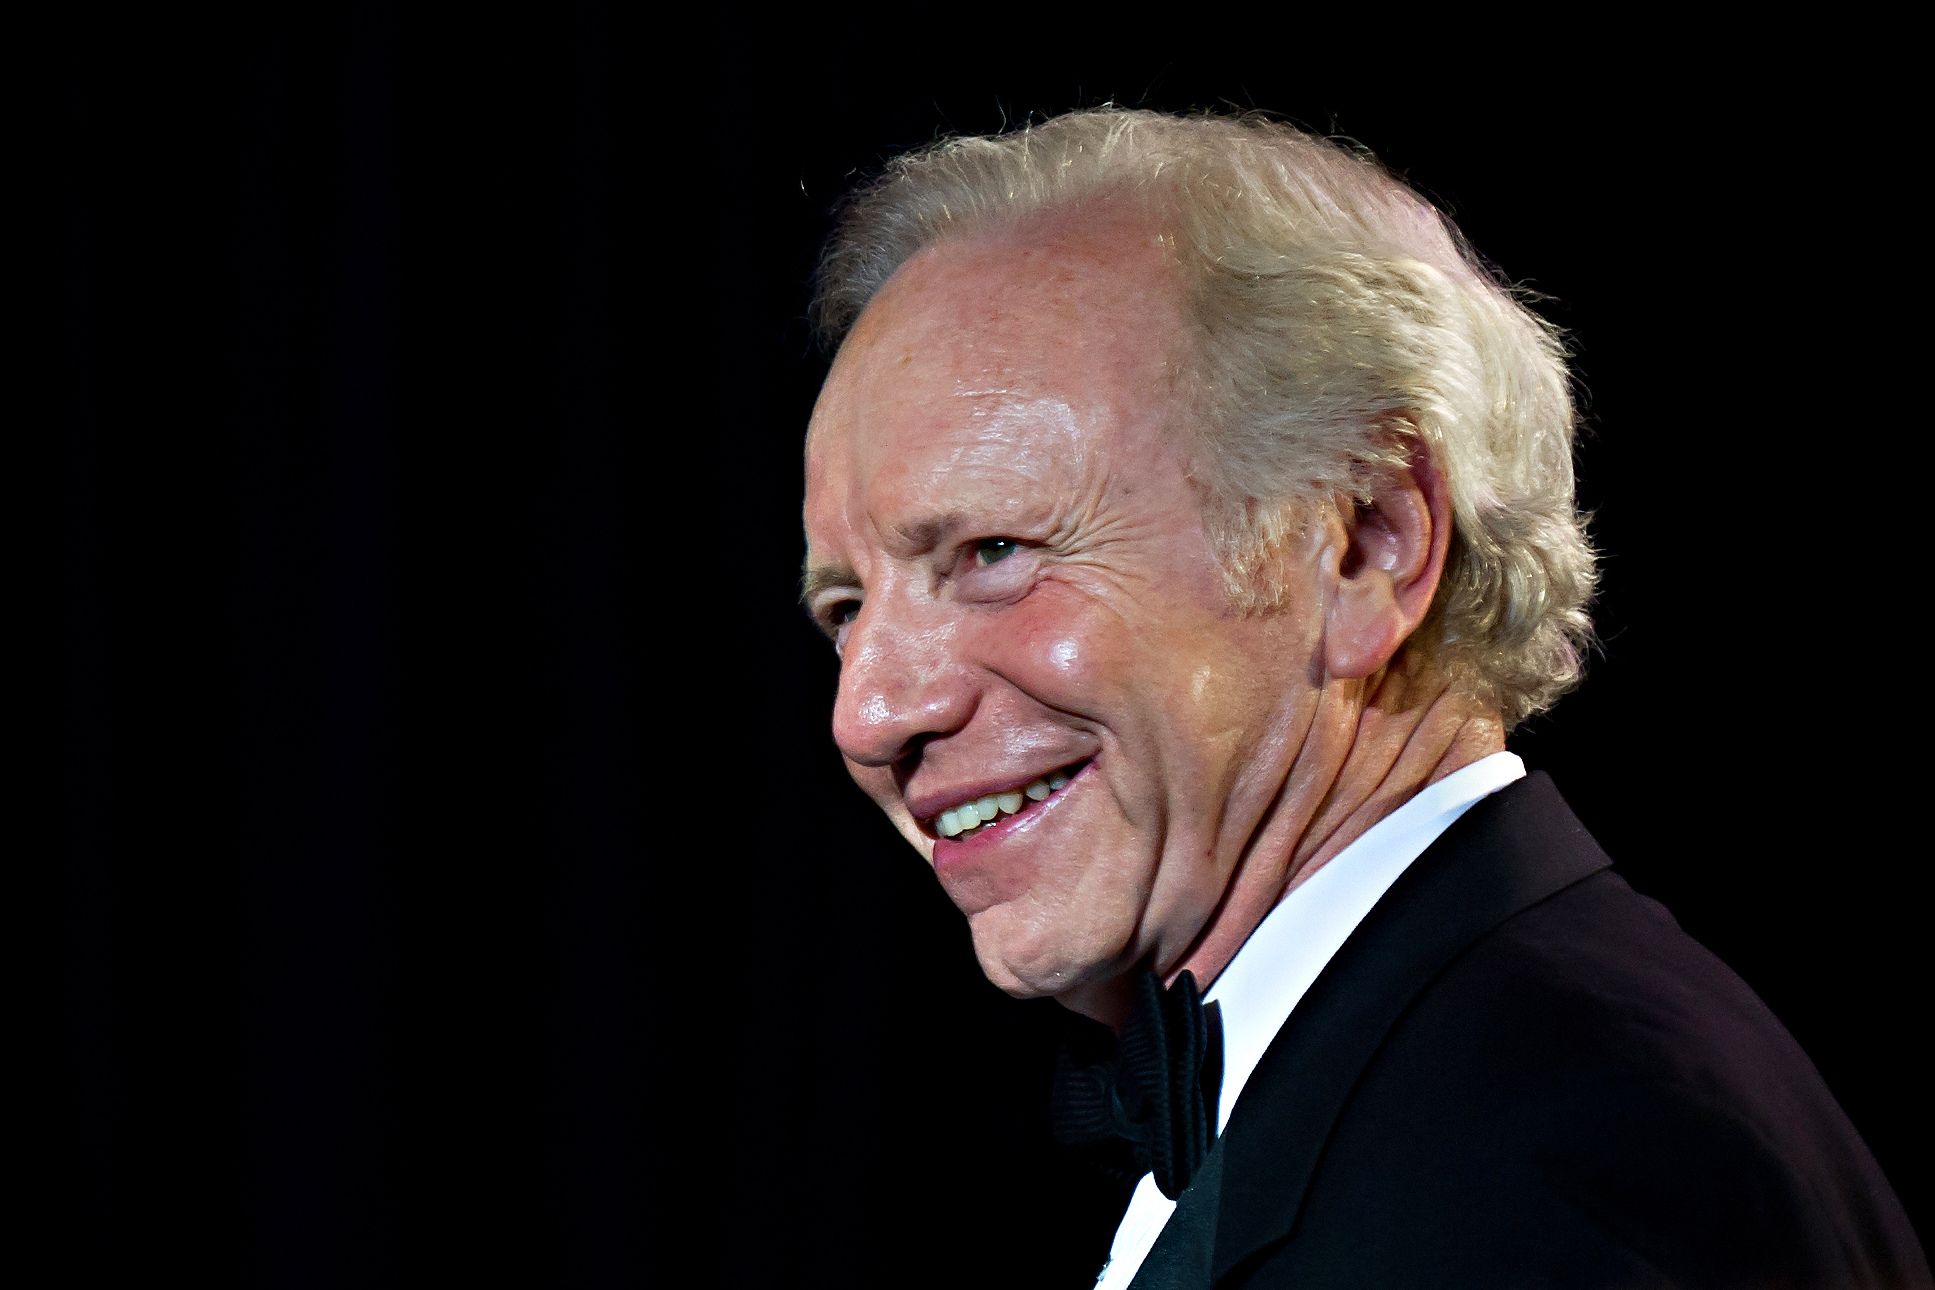 Senator Joe Lieberman: On Candle Lighting